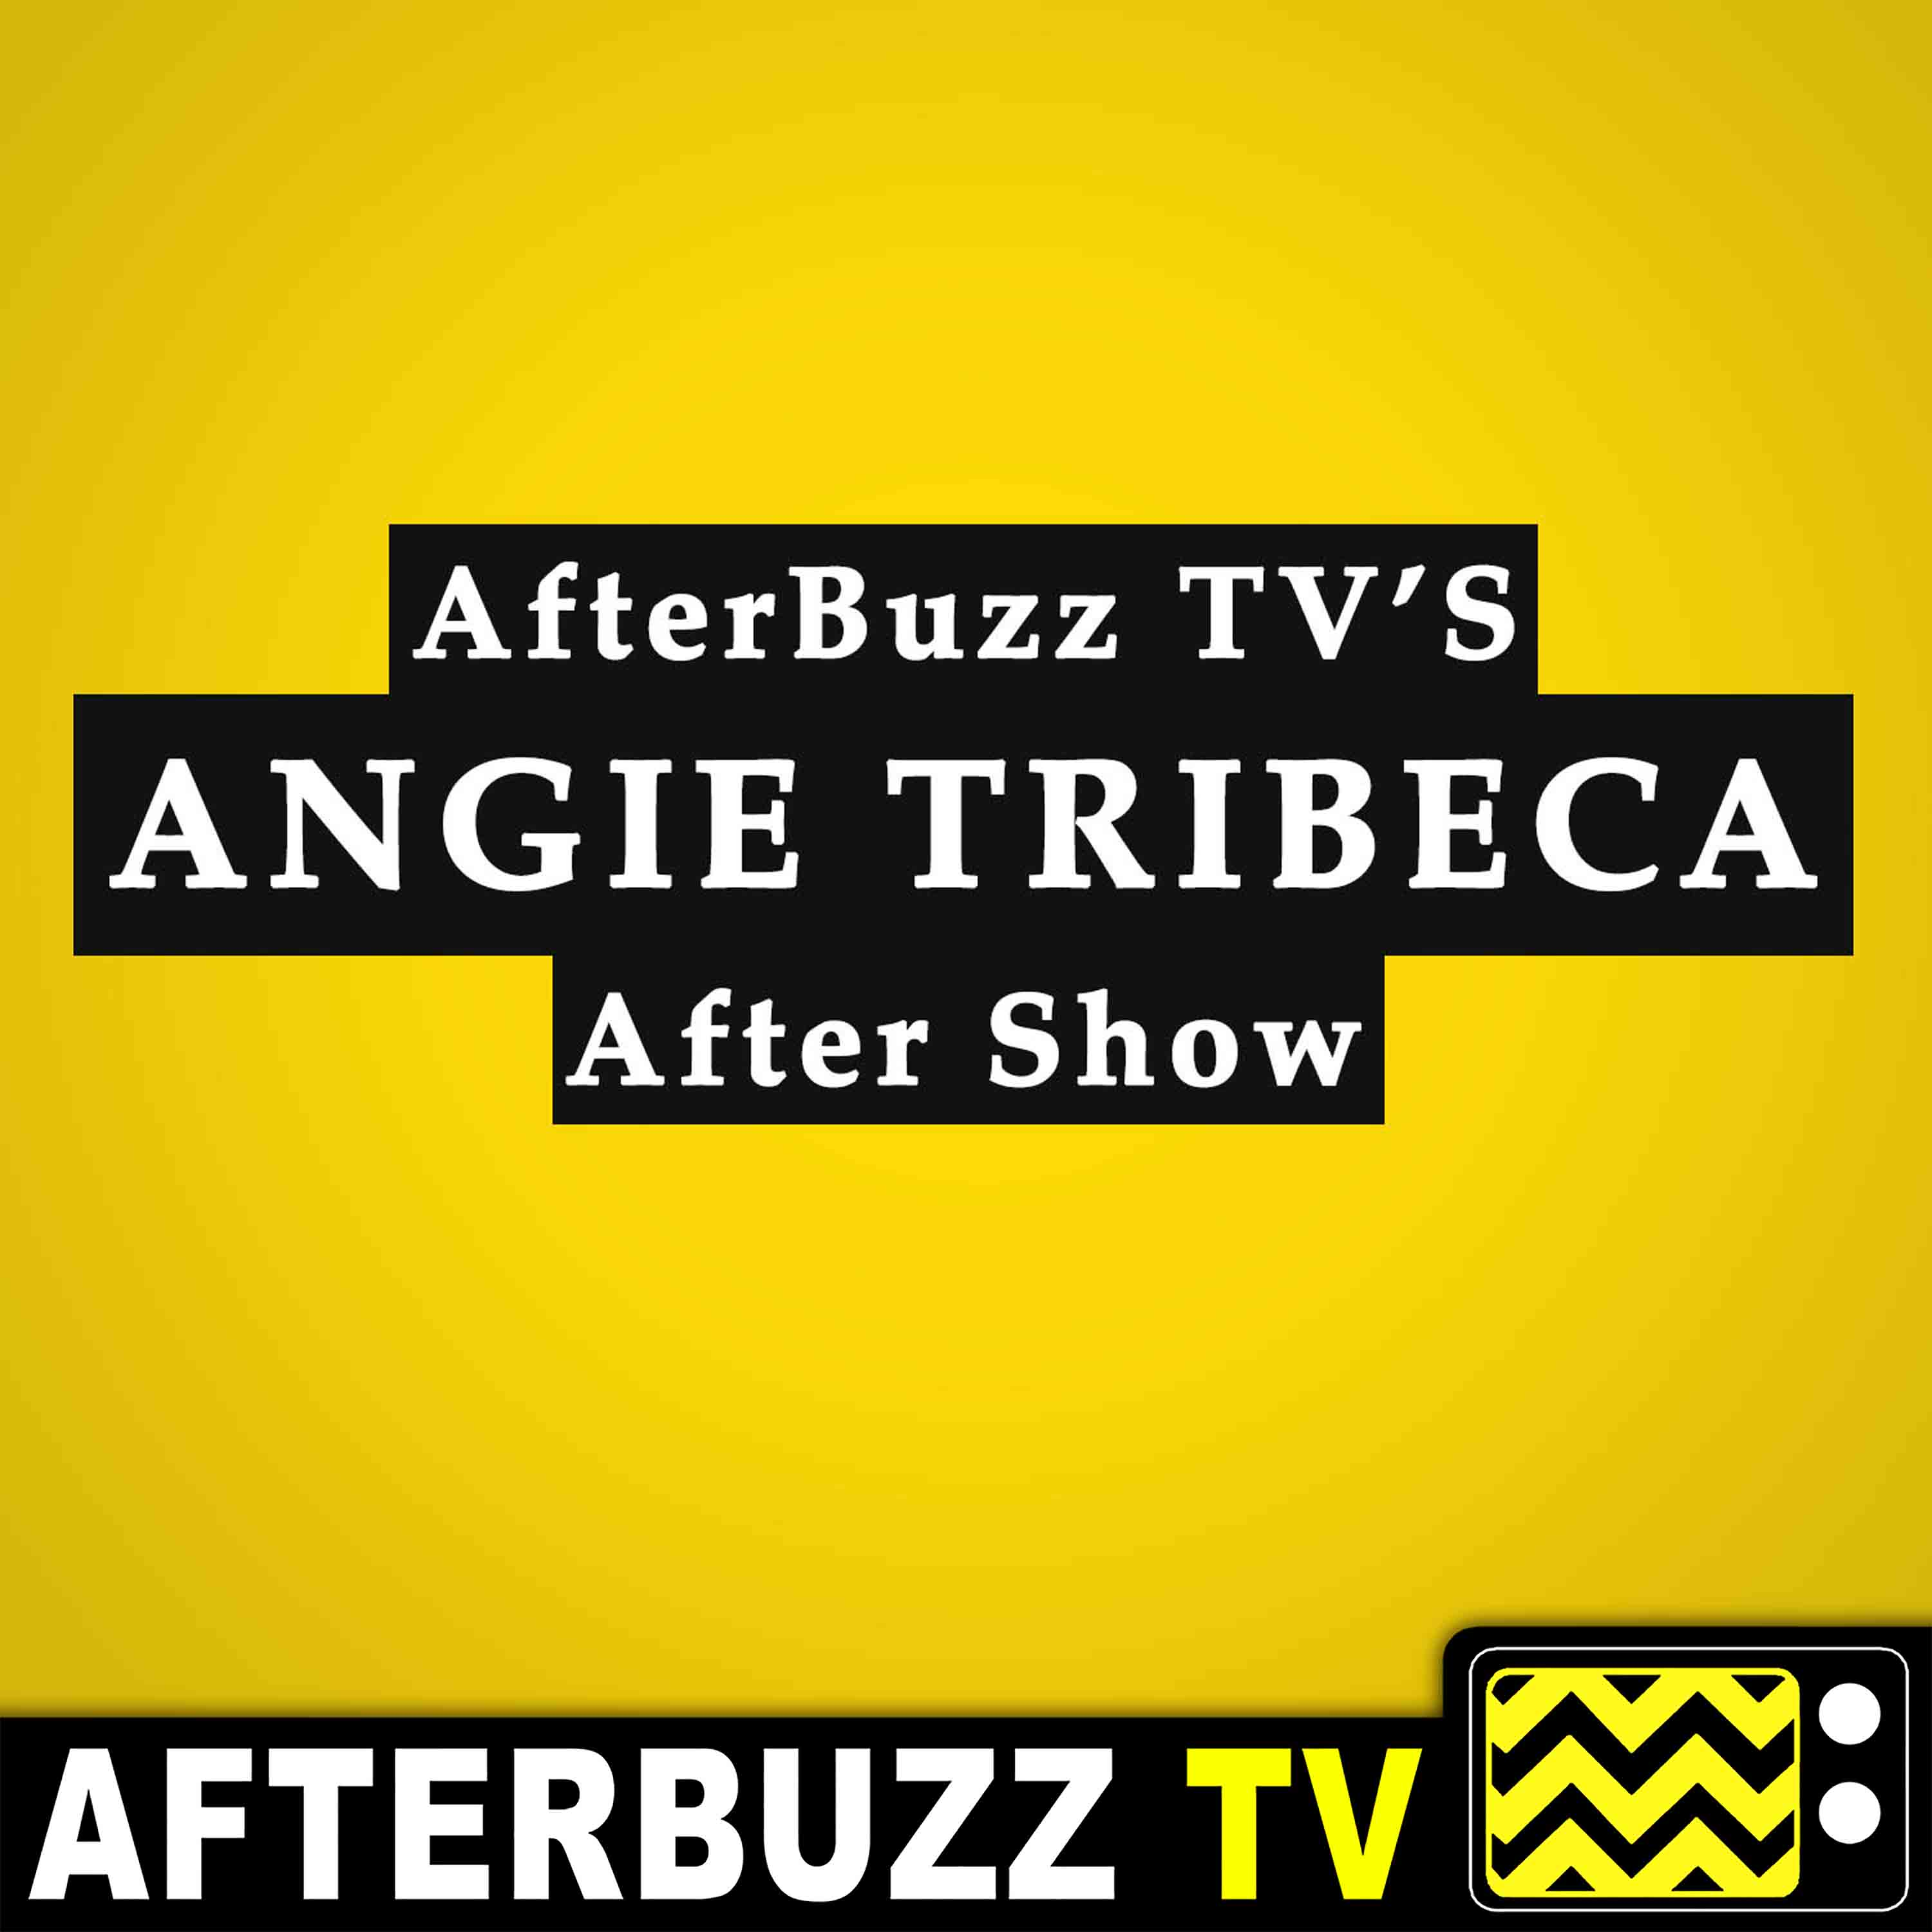 Angie Tribeca Reviews & After Show